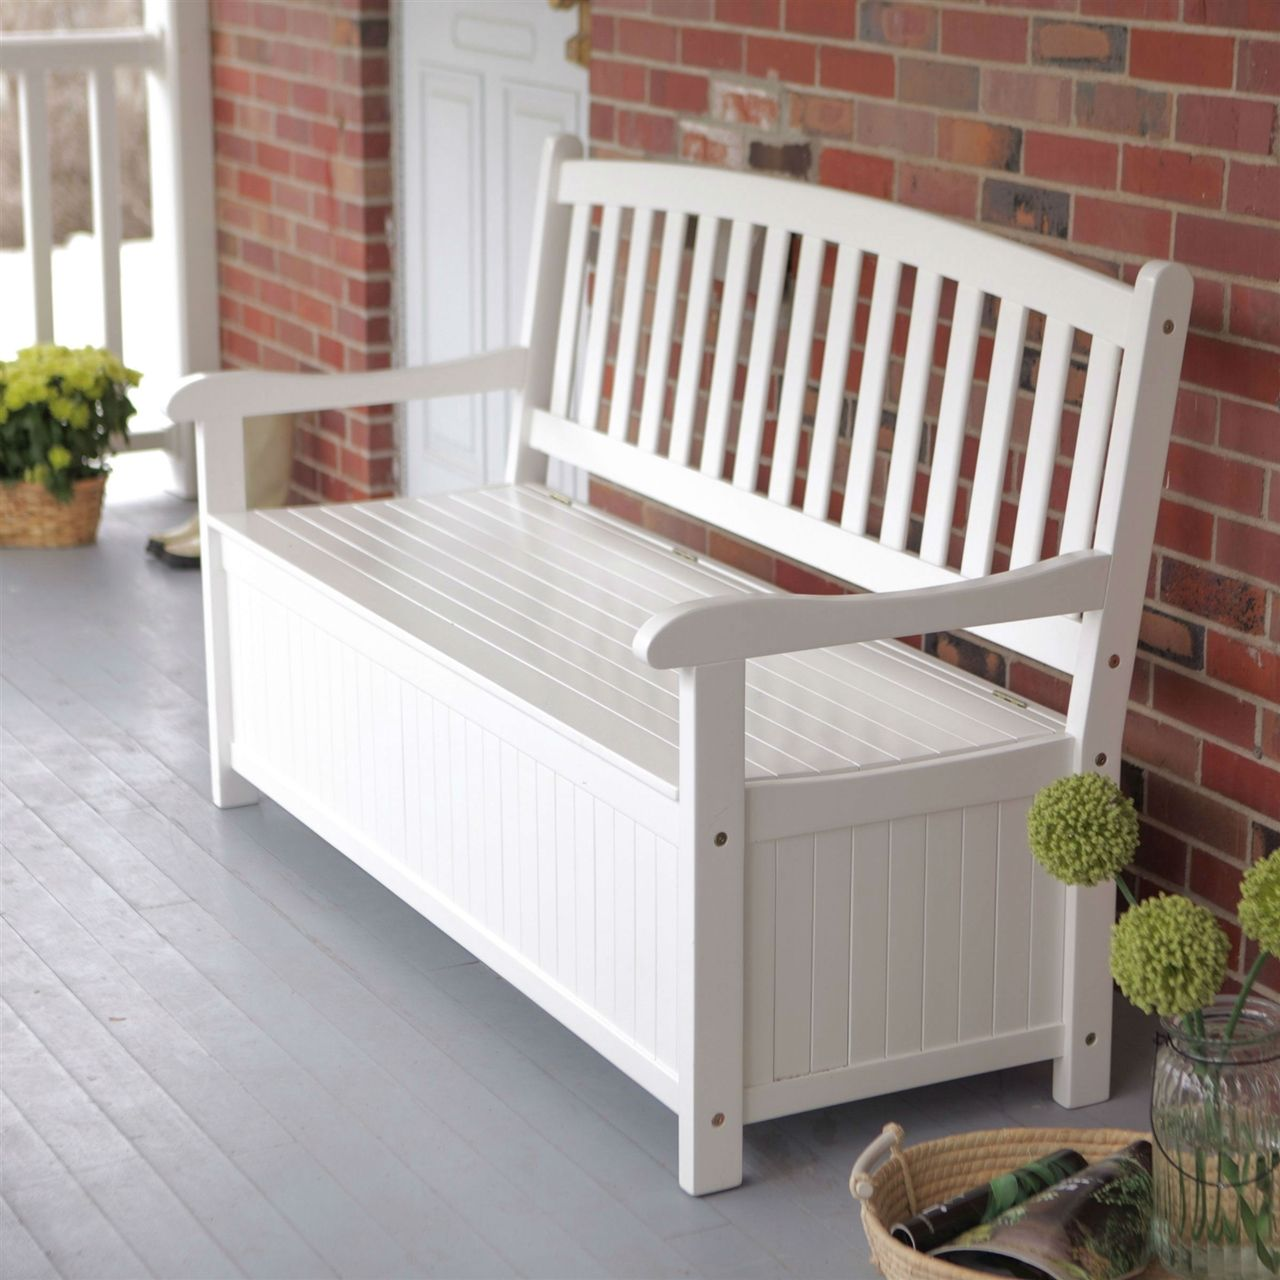 White Wood 4Ft Outdoor Patio Garden Bench Deck Box with